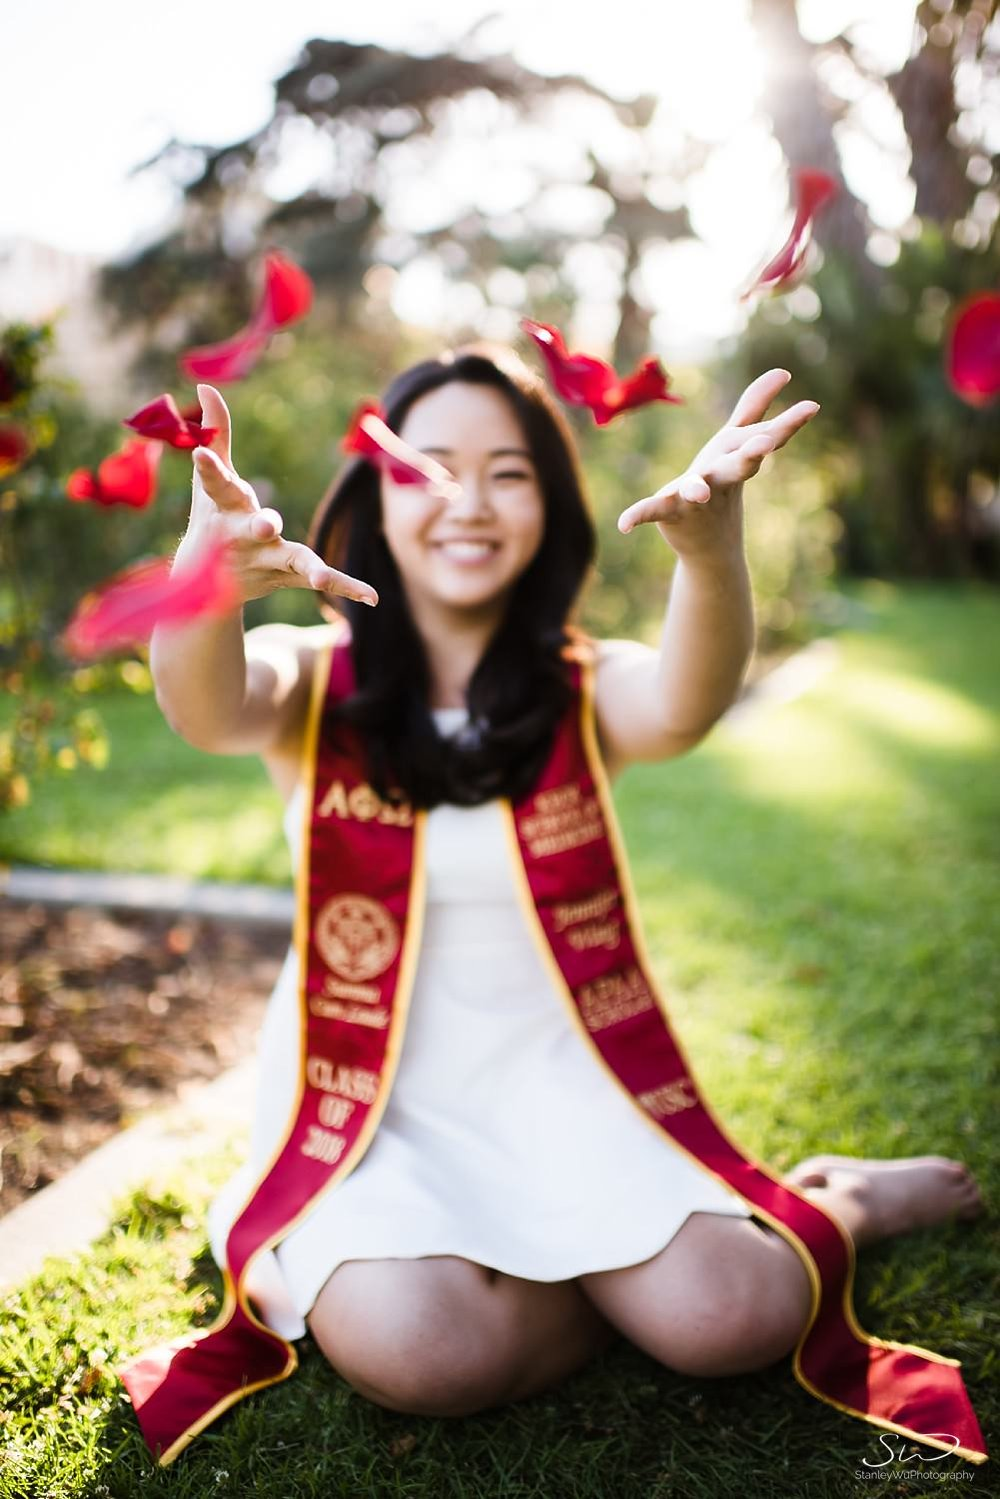 los-angeles-usc-graduation-senior-portraits_0062.jpg